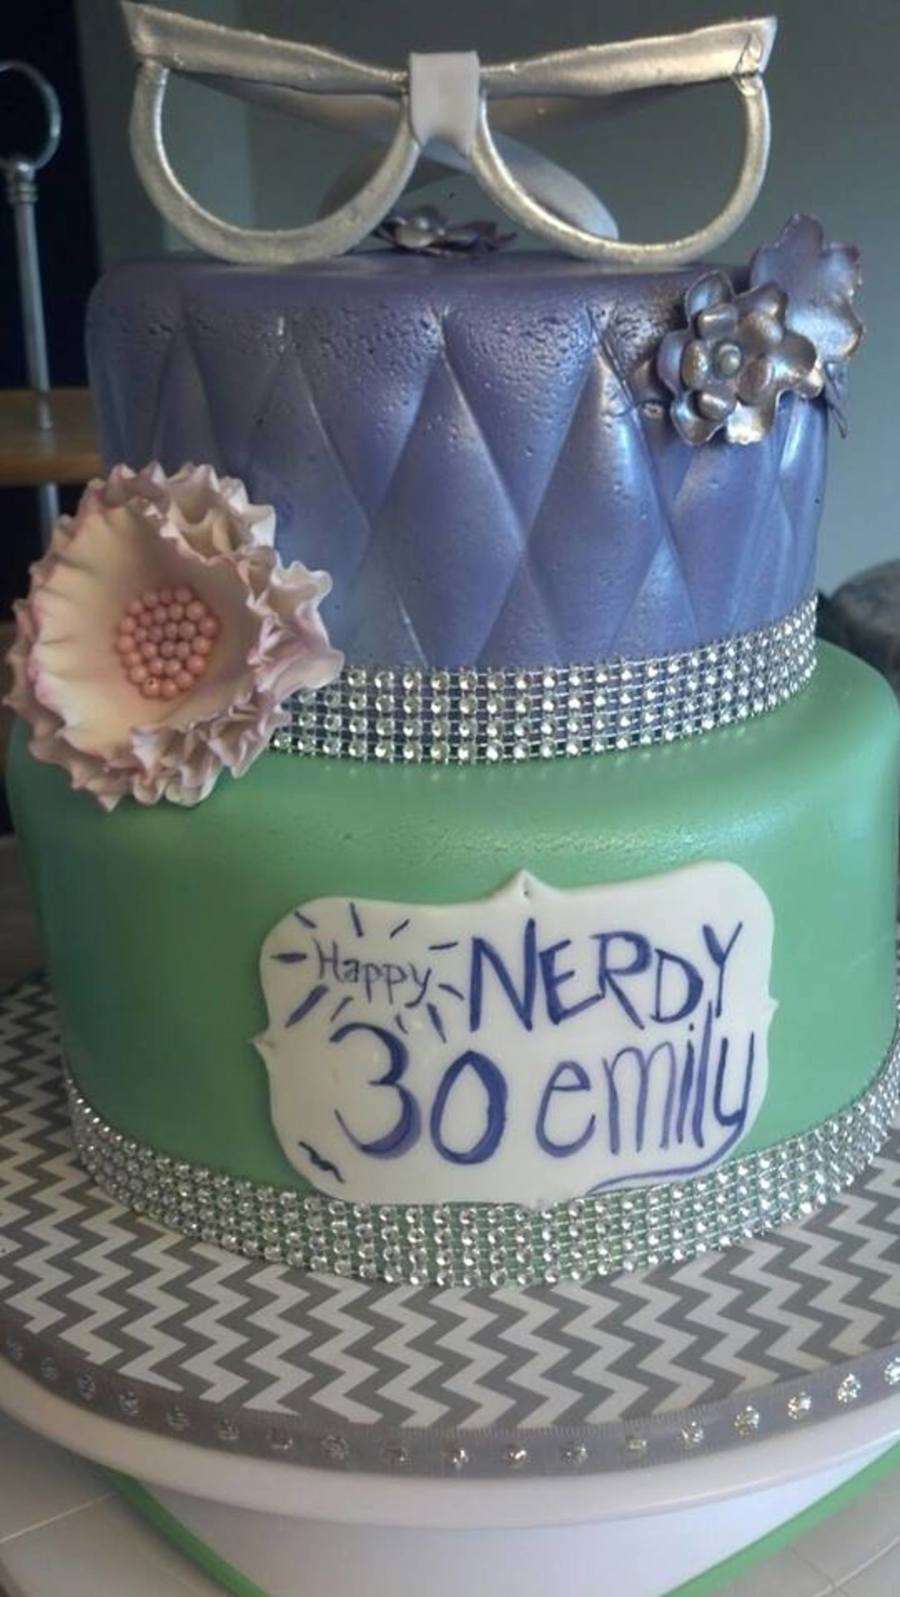 Incredible Nerdy 30 Birthday Cake Cakecentral Com Funny Birthday Cards Online Inifofree Goldxyz